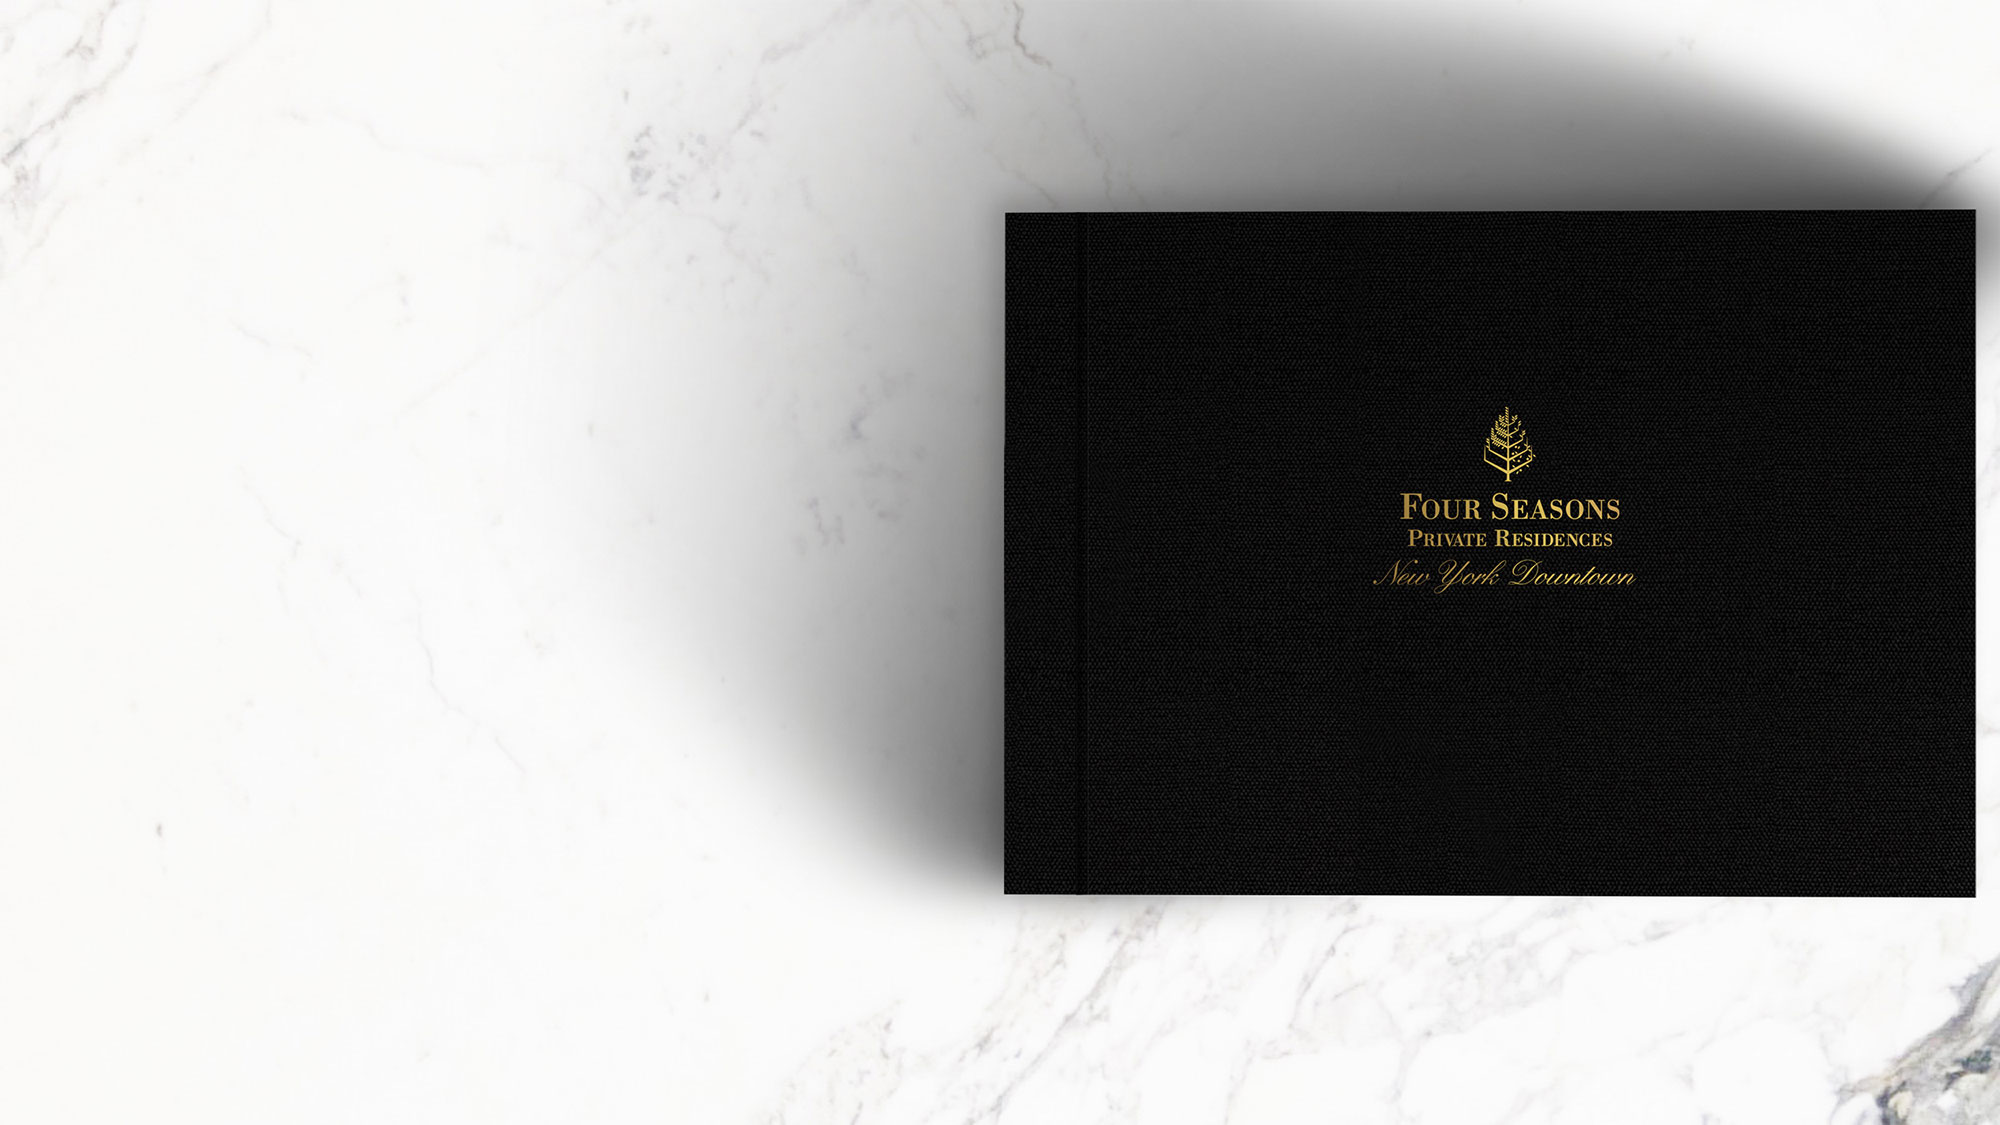 Collateral Design for 30 Park Place by The Four Seasons